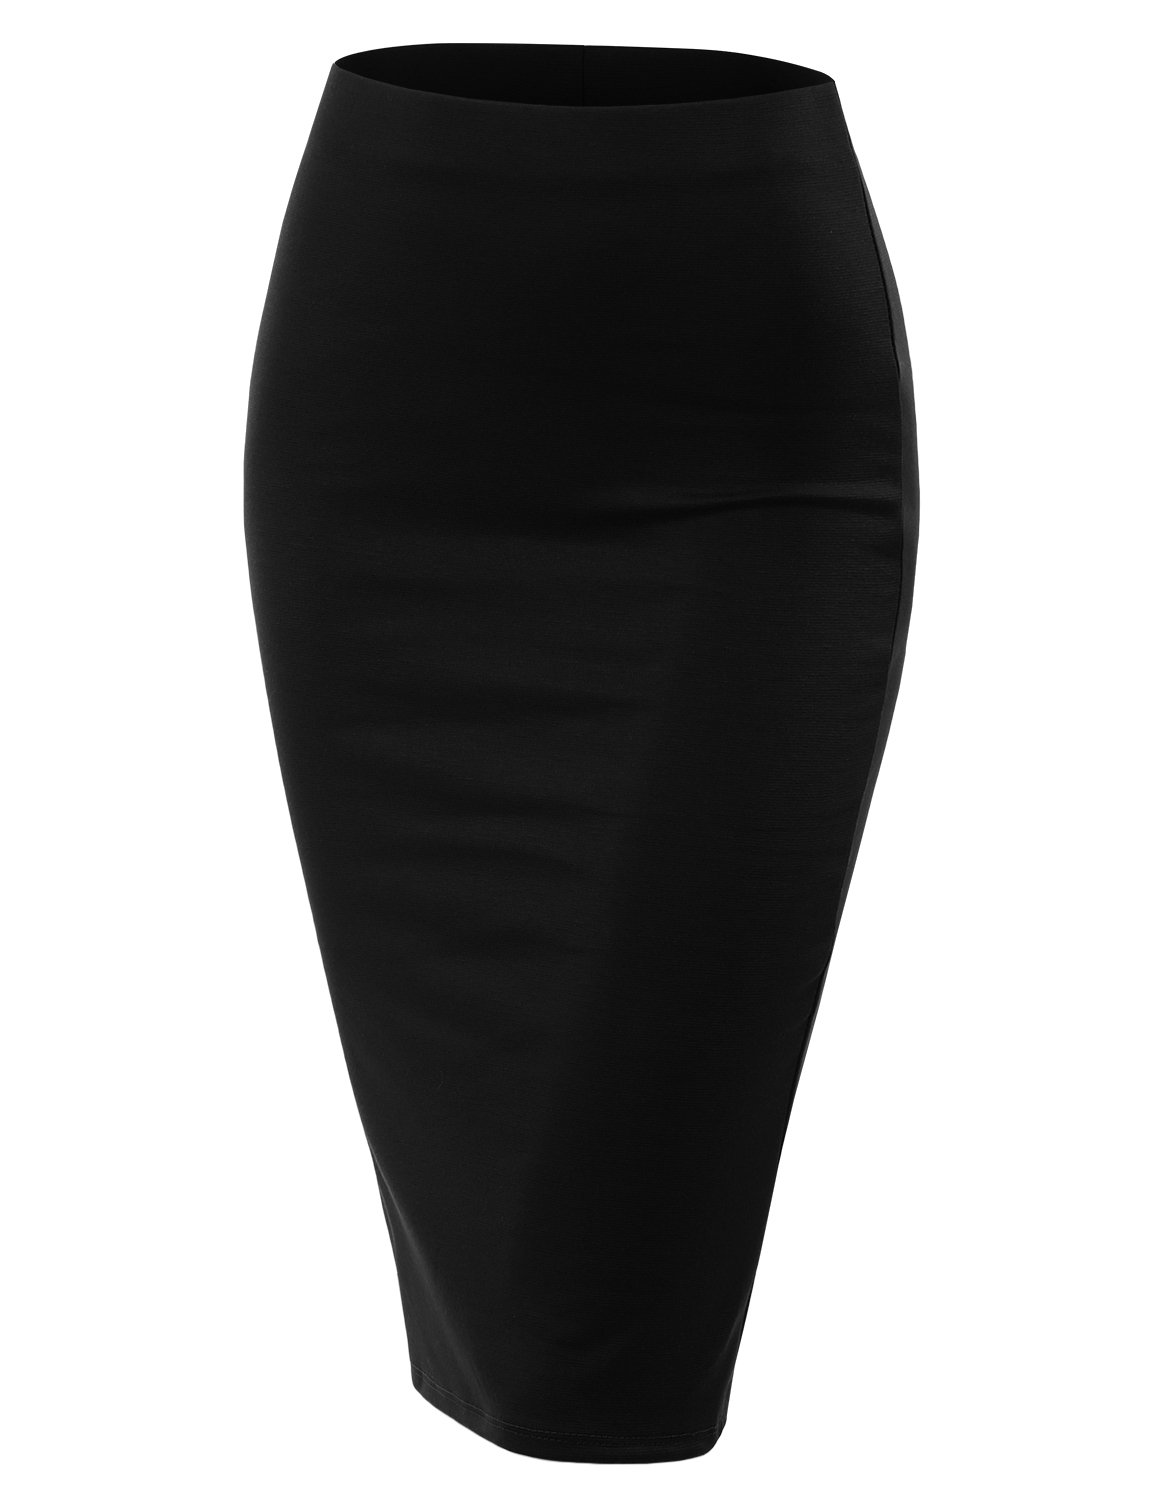 CLOVERY Womens Basic Stretch Knit Midi Pencil Skirt with Back Slit